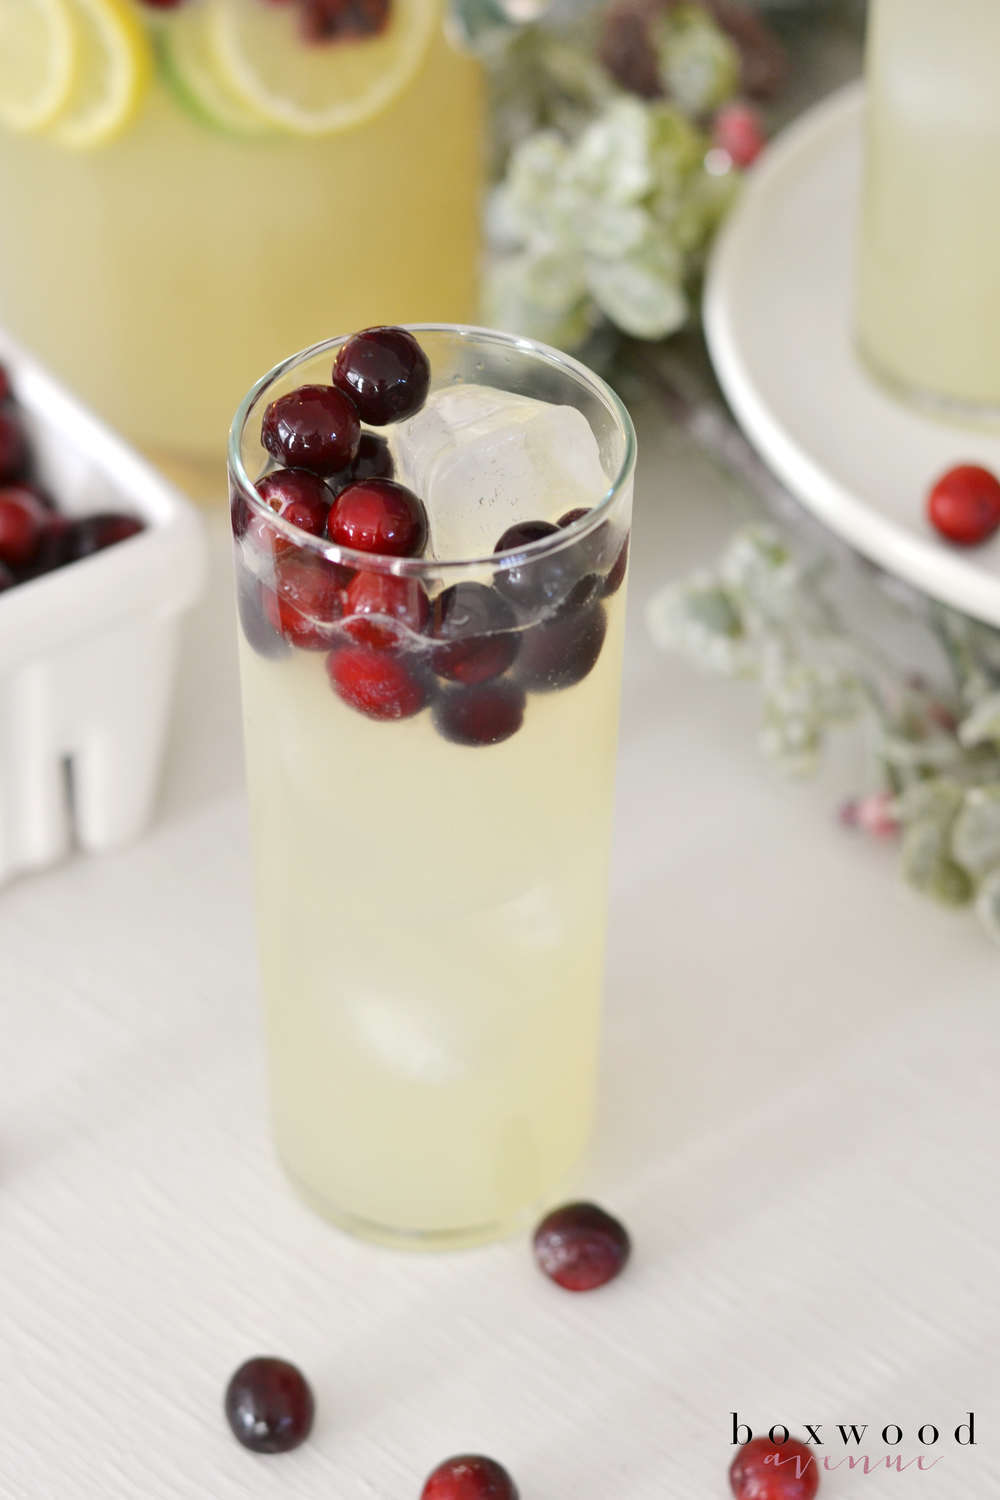 Easy recipe to remember for parties - from boxwoodavenue.com